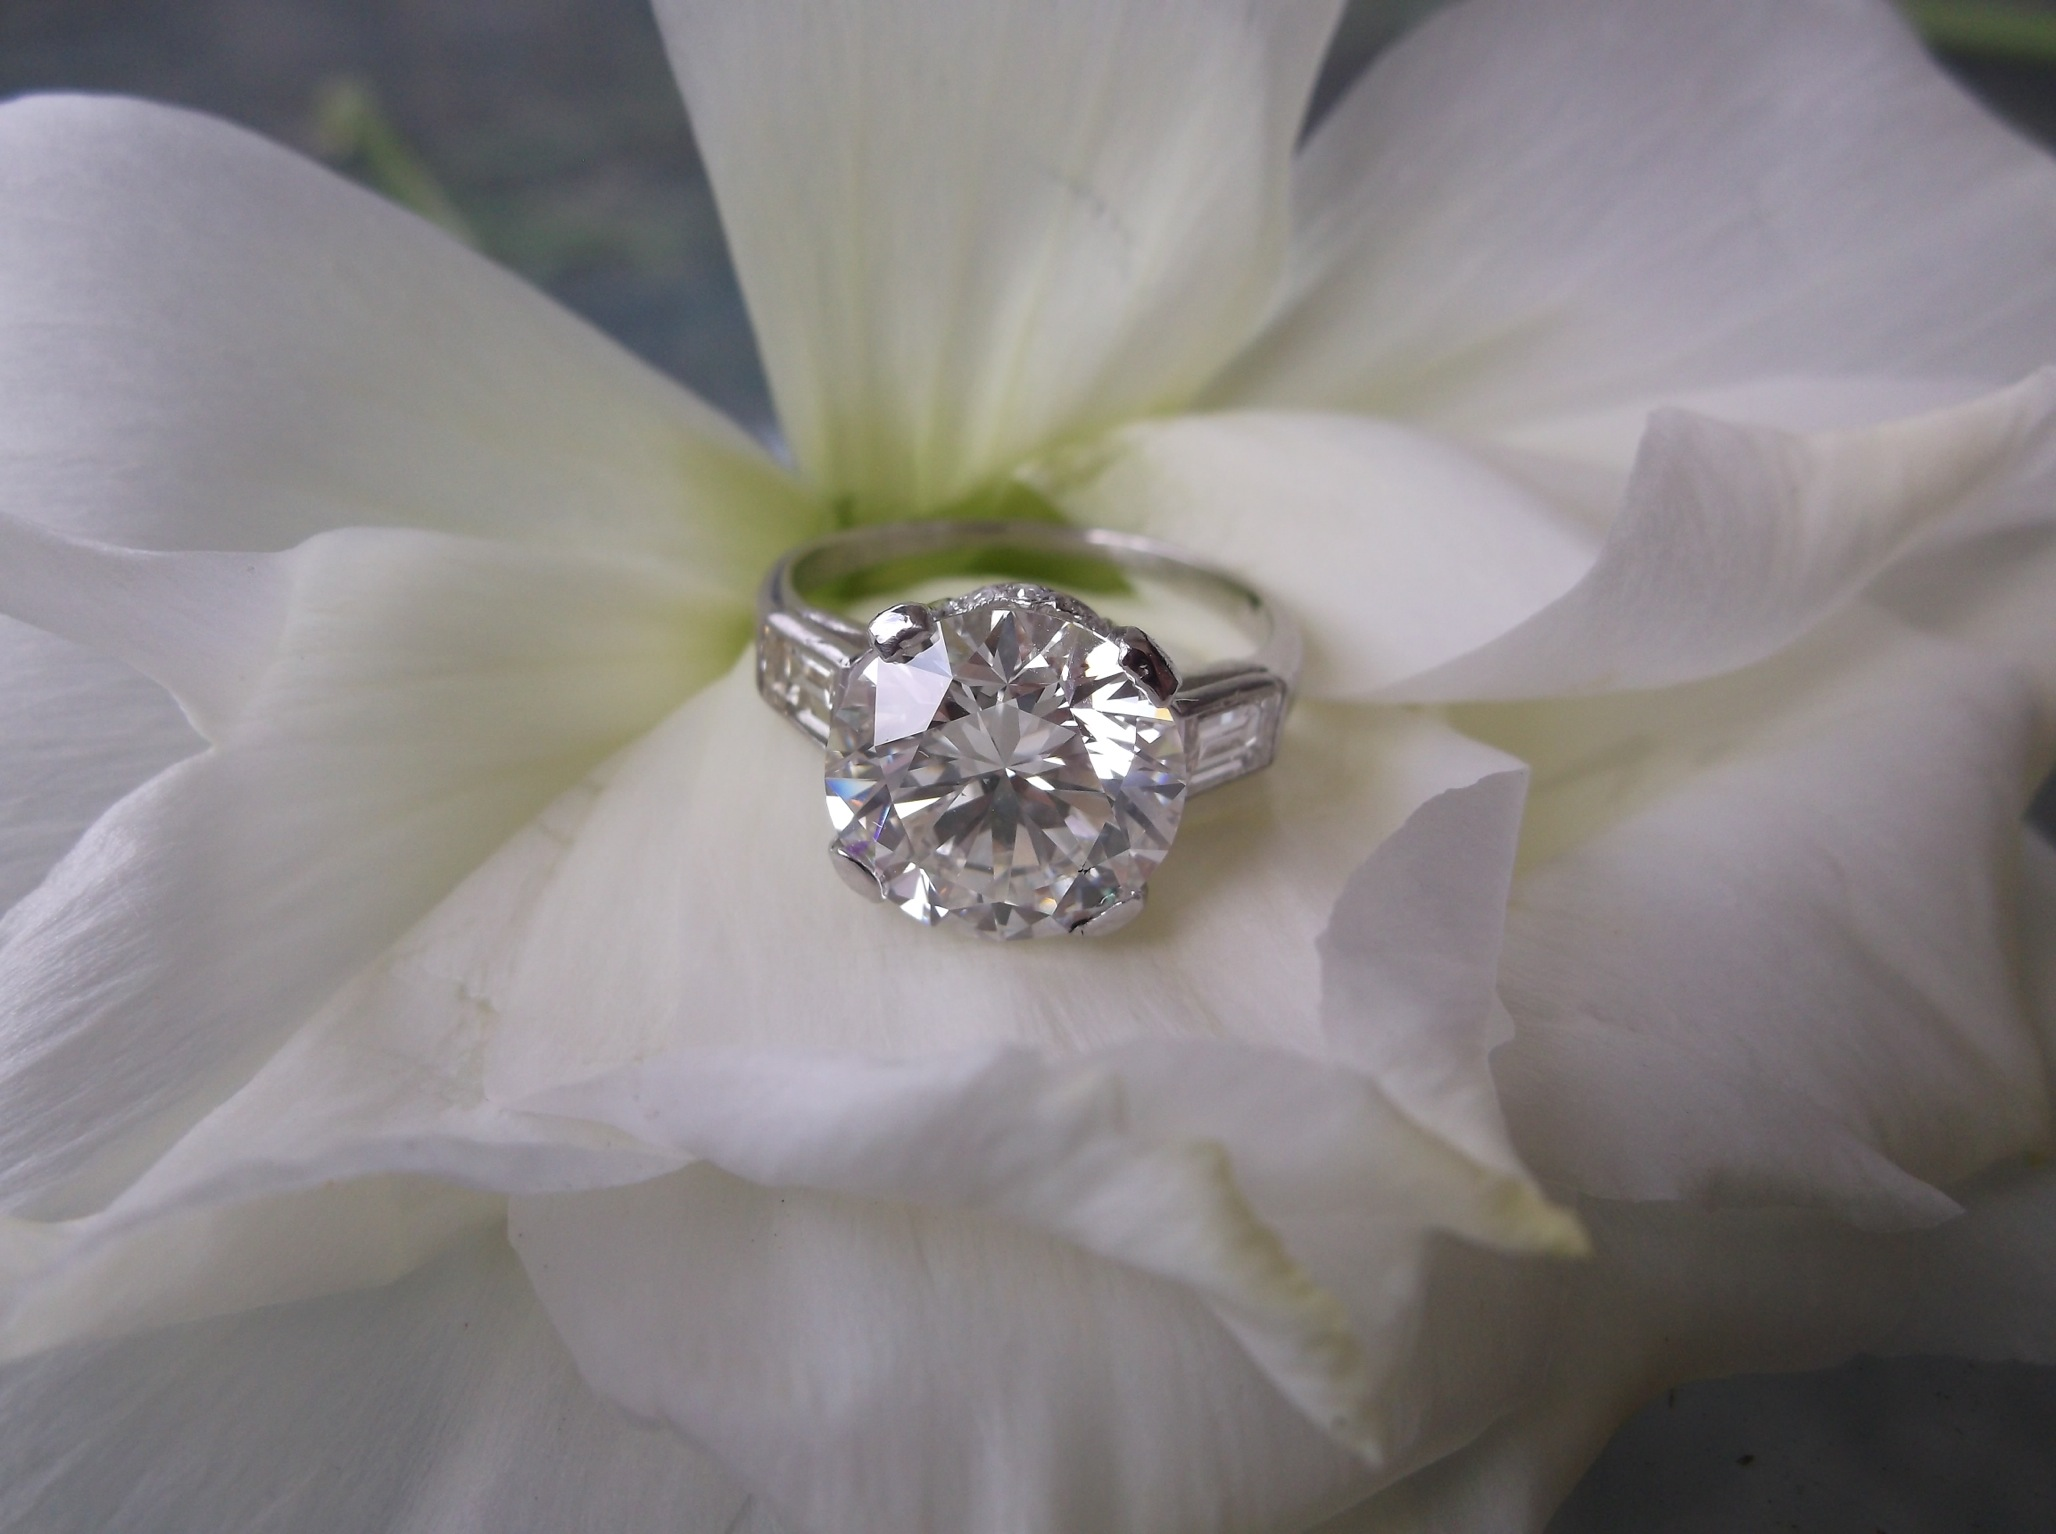 SOLD - Gorgeous 4.03 carat ideal cut round brillant diamond set in a beautiful Art Deco platinum and baguette diamond mounting.